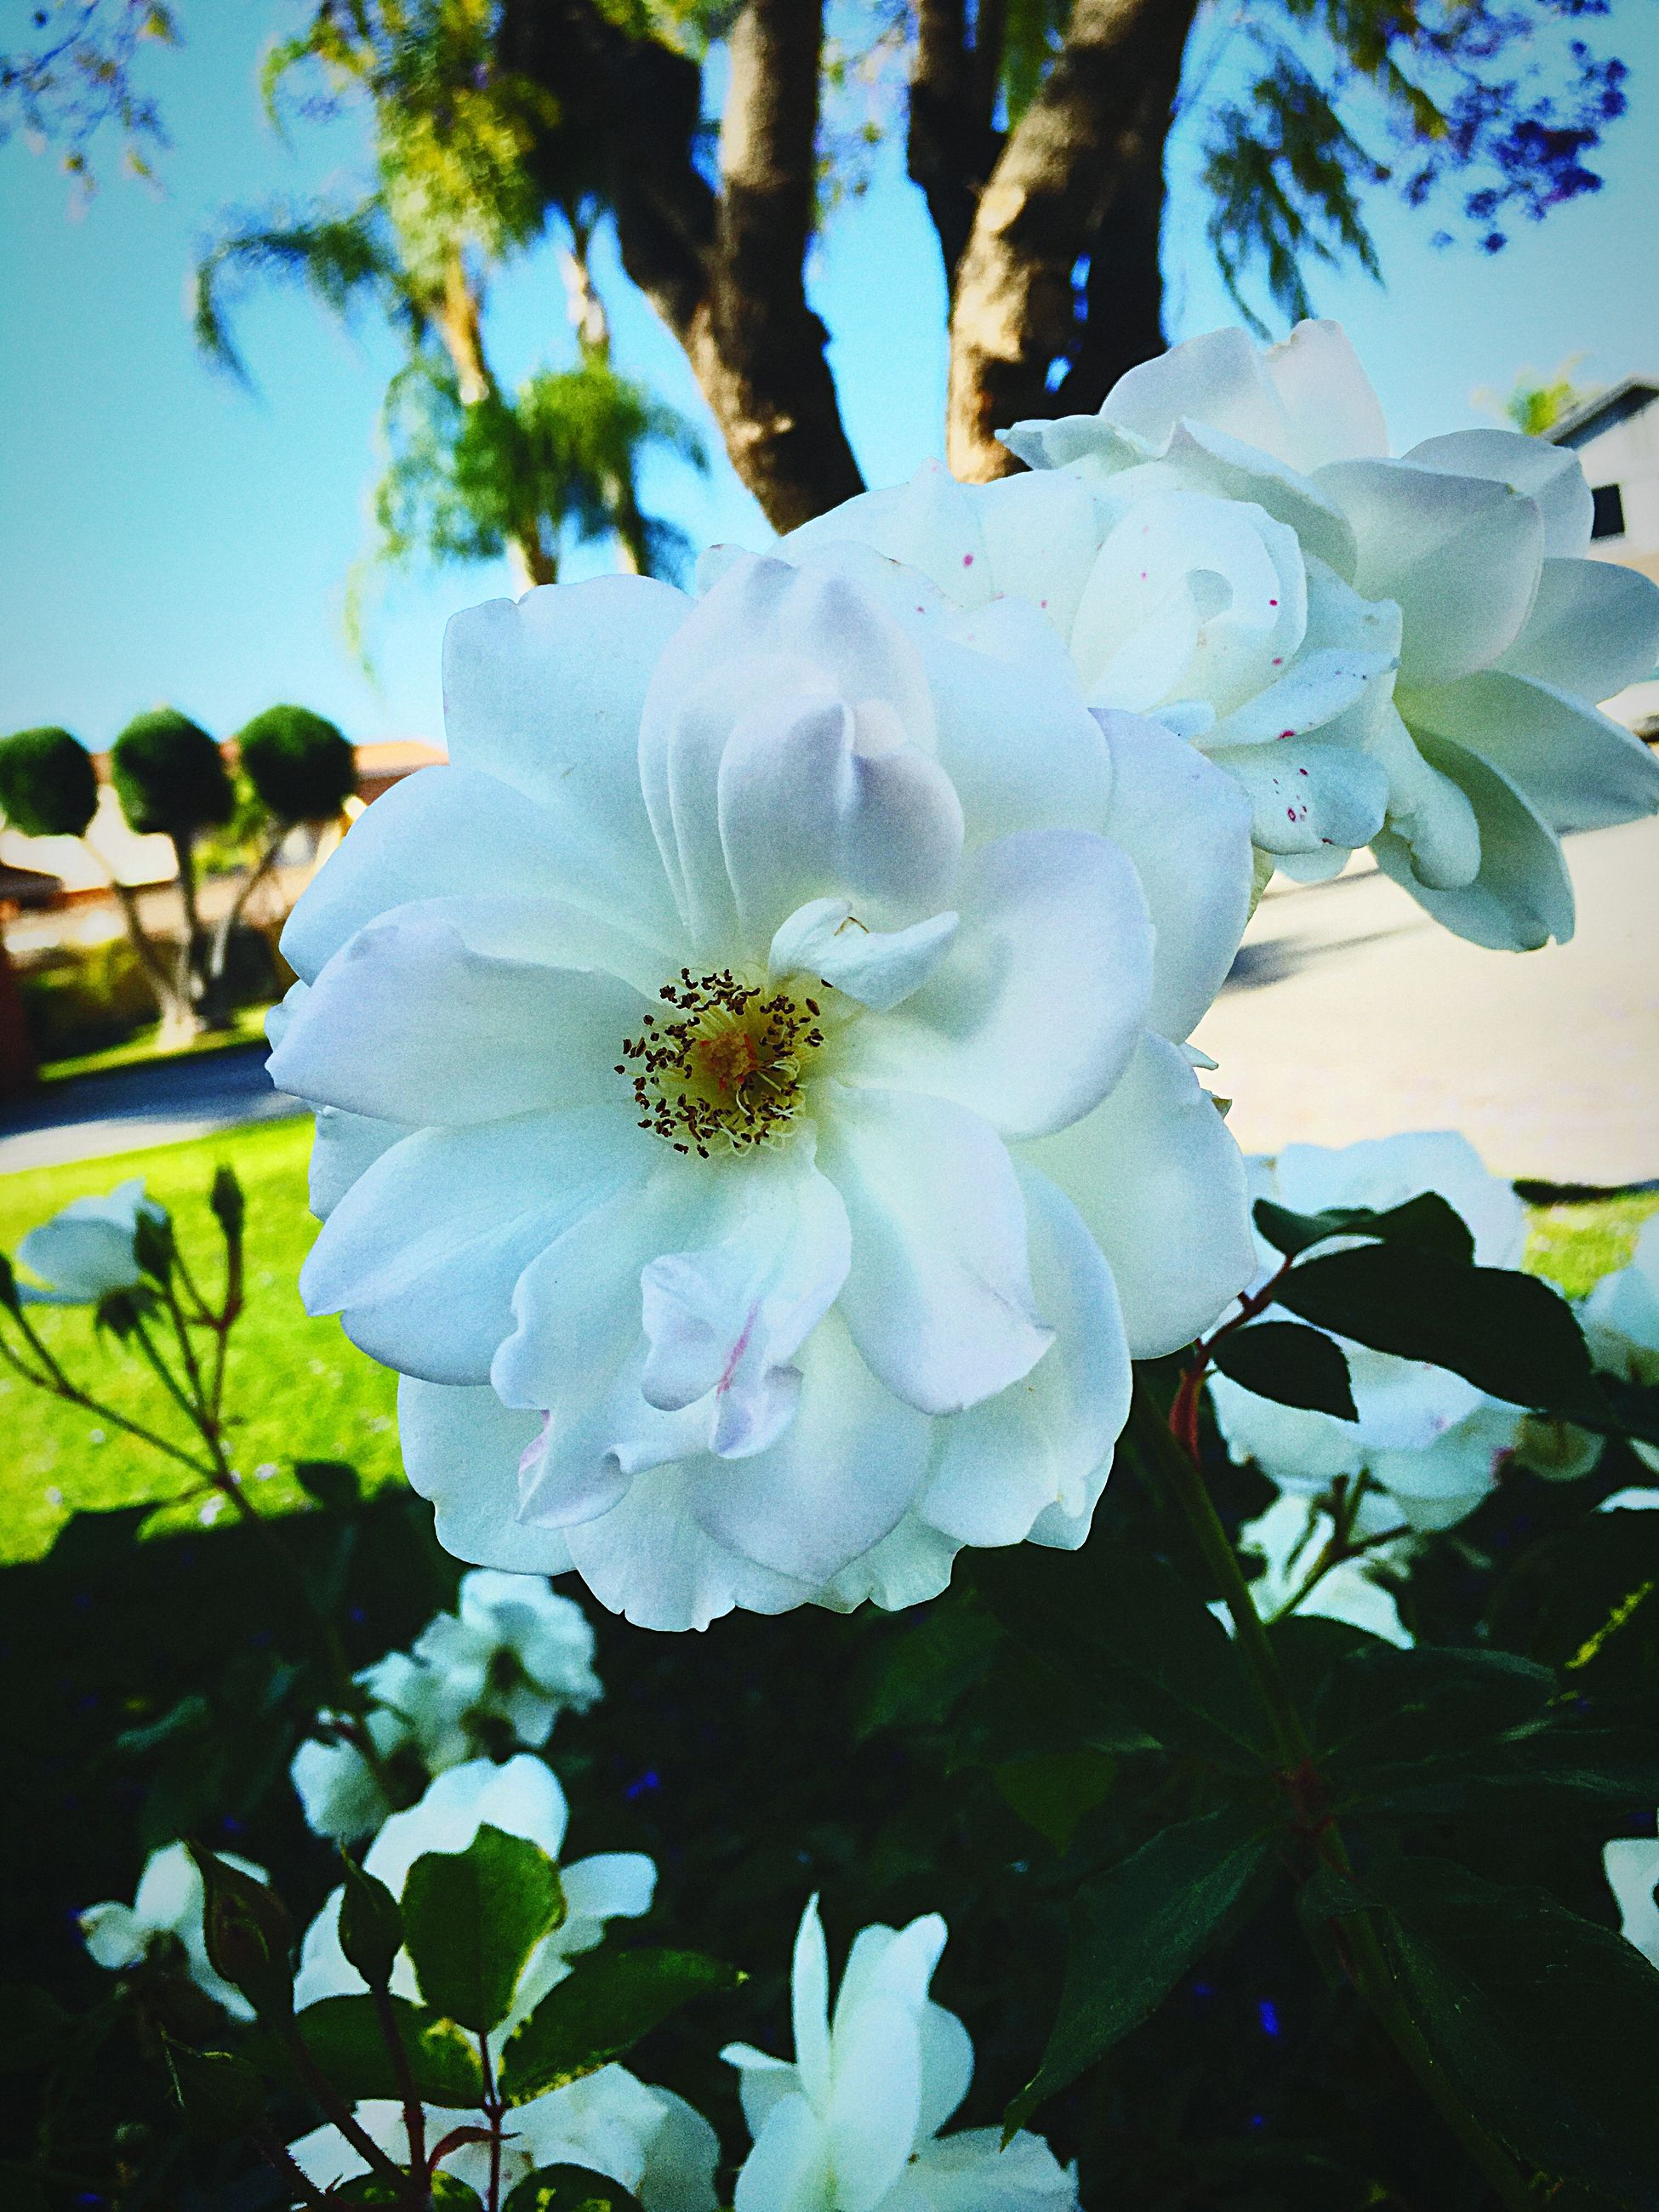 flower, petal, fragility, growth, freshness, leaf, flower head, white color, blooming, beauty in nature, close-up, nature, plant, pollen, in bloom, focus on foreground, single flower, high angle view, day, park - man made space